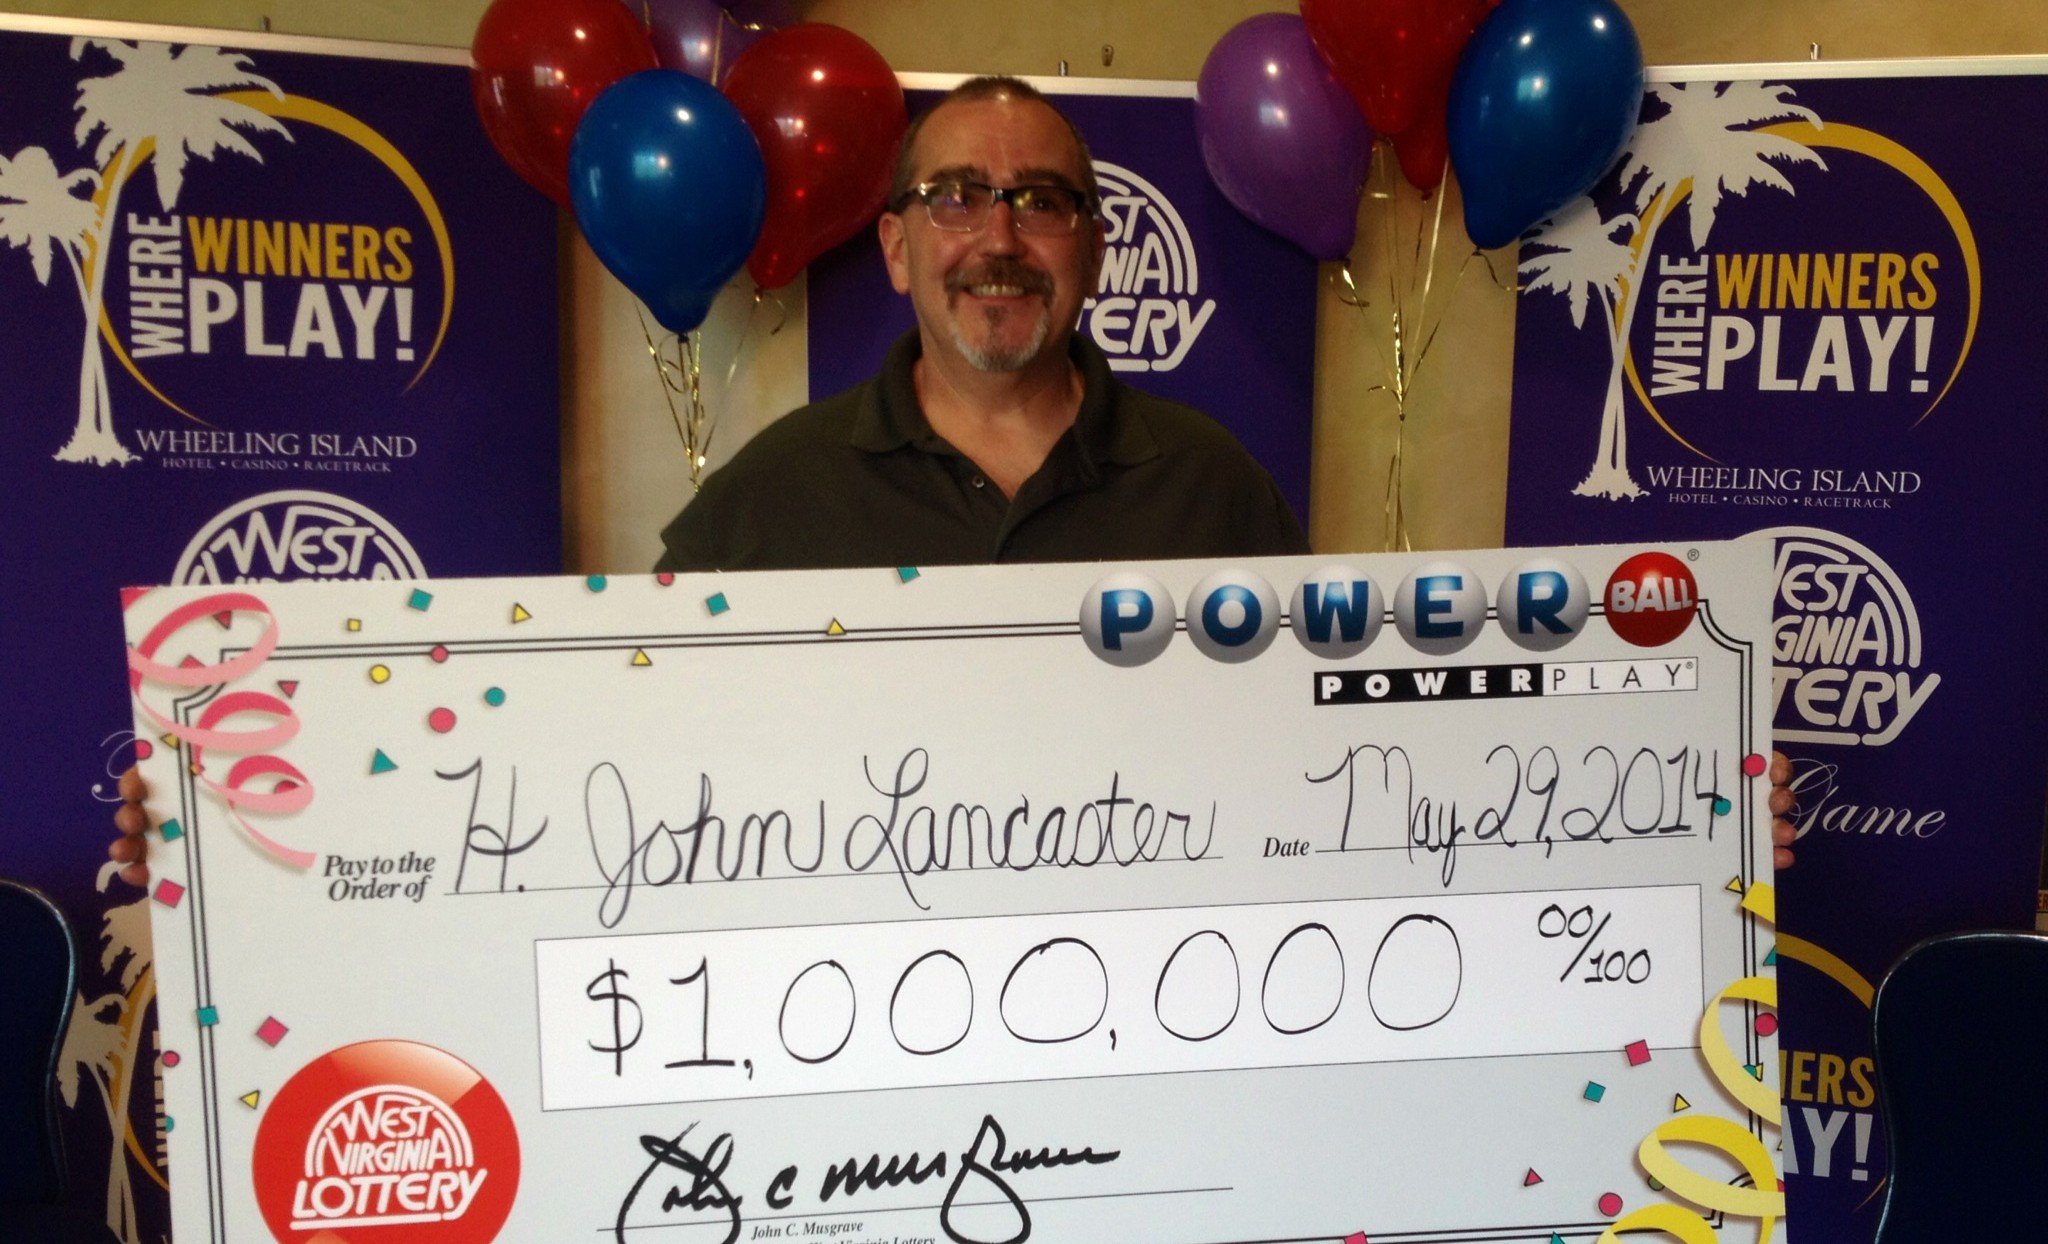 Small business owner John Lancaster says he couldn't believe it when he heard he had won.